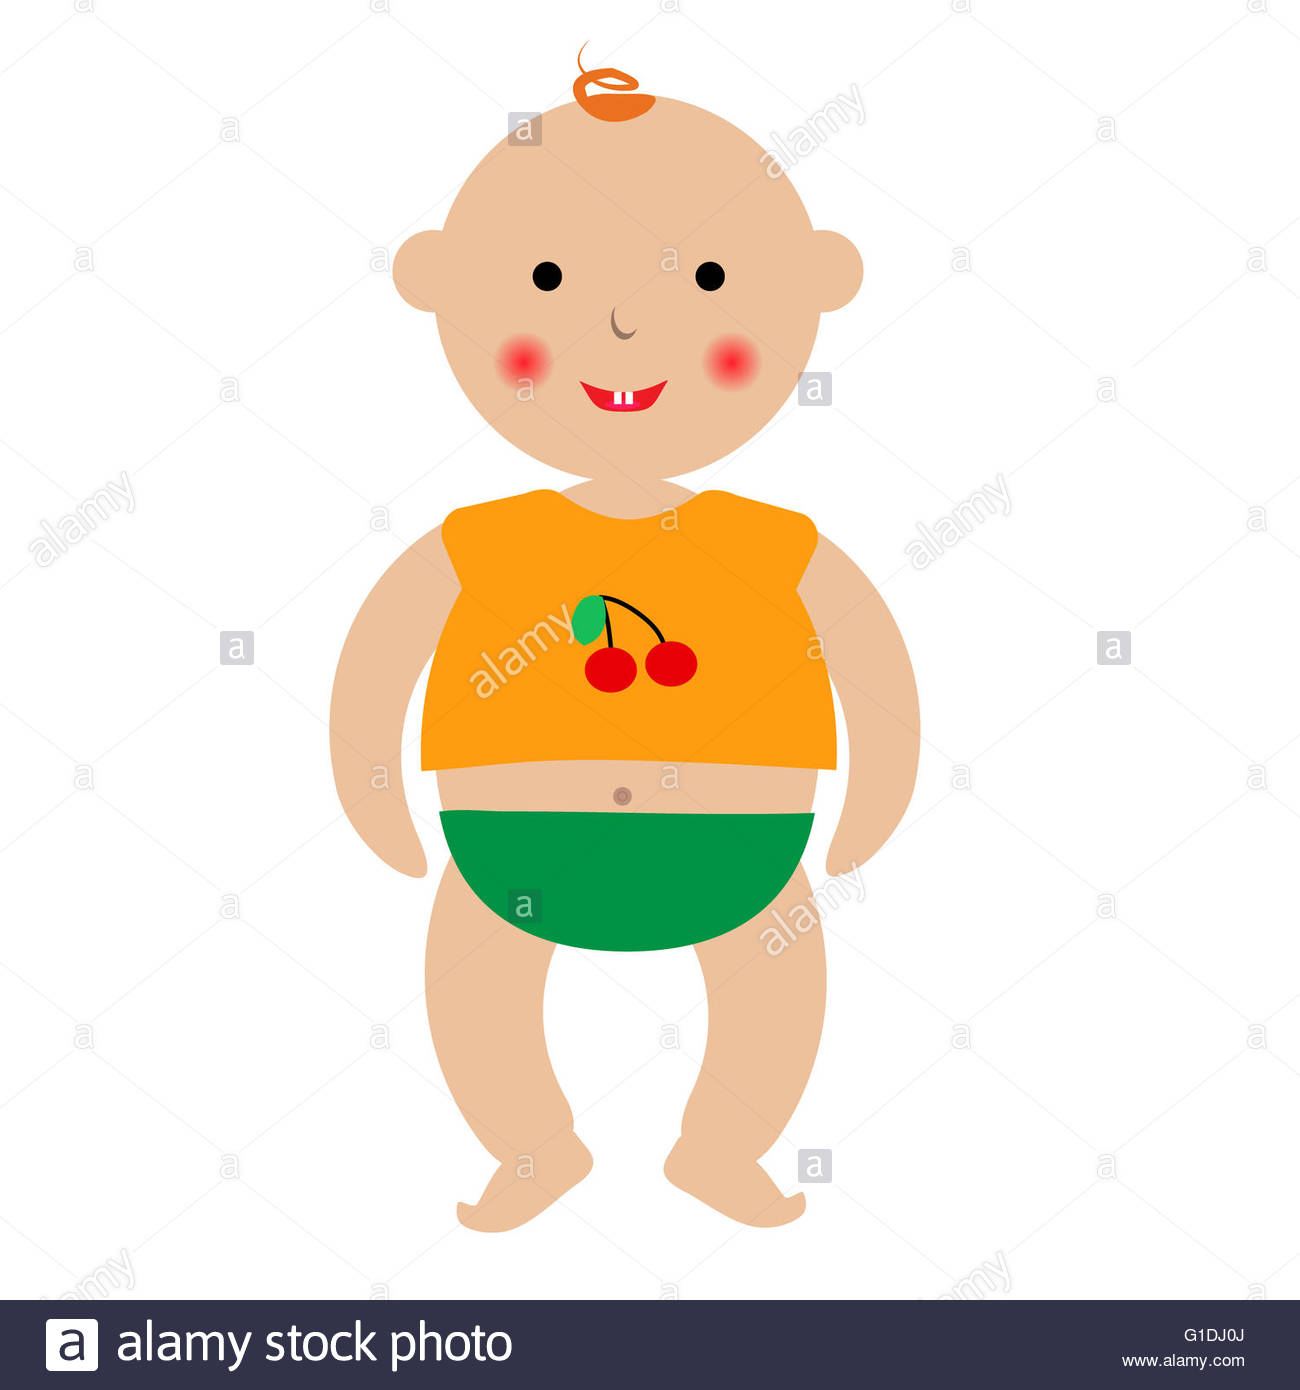 1300x1390 Standing Cartoon Baby. Laughing Baby Standing In T Shirt And Pants